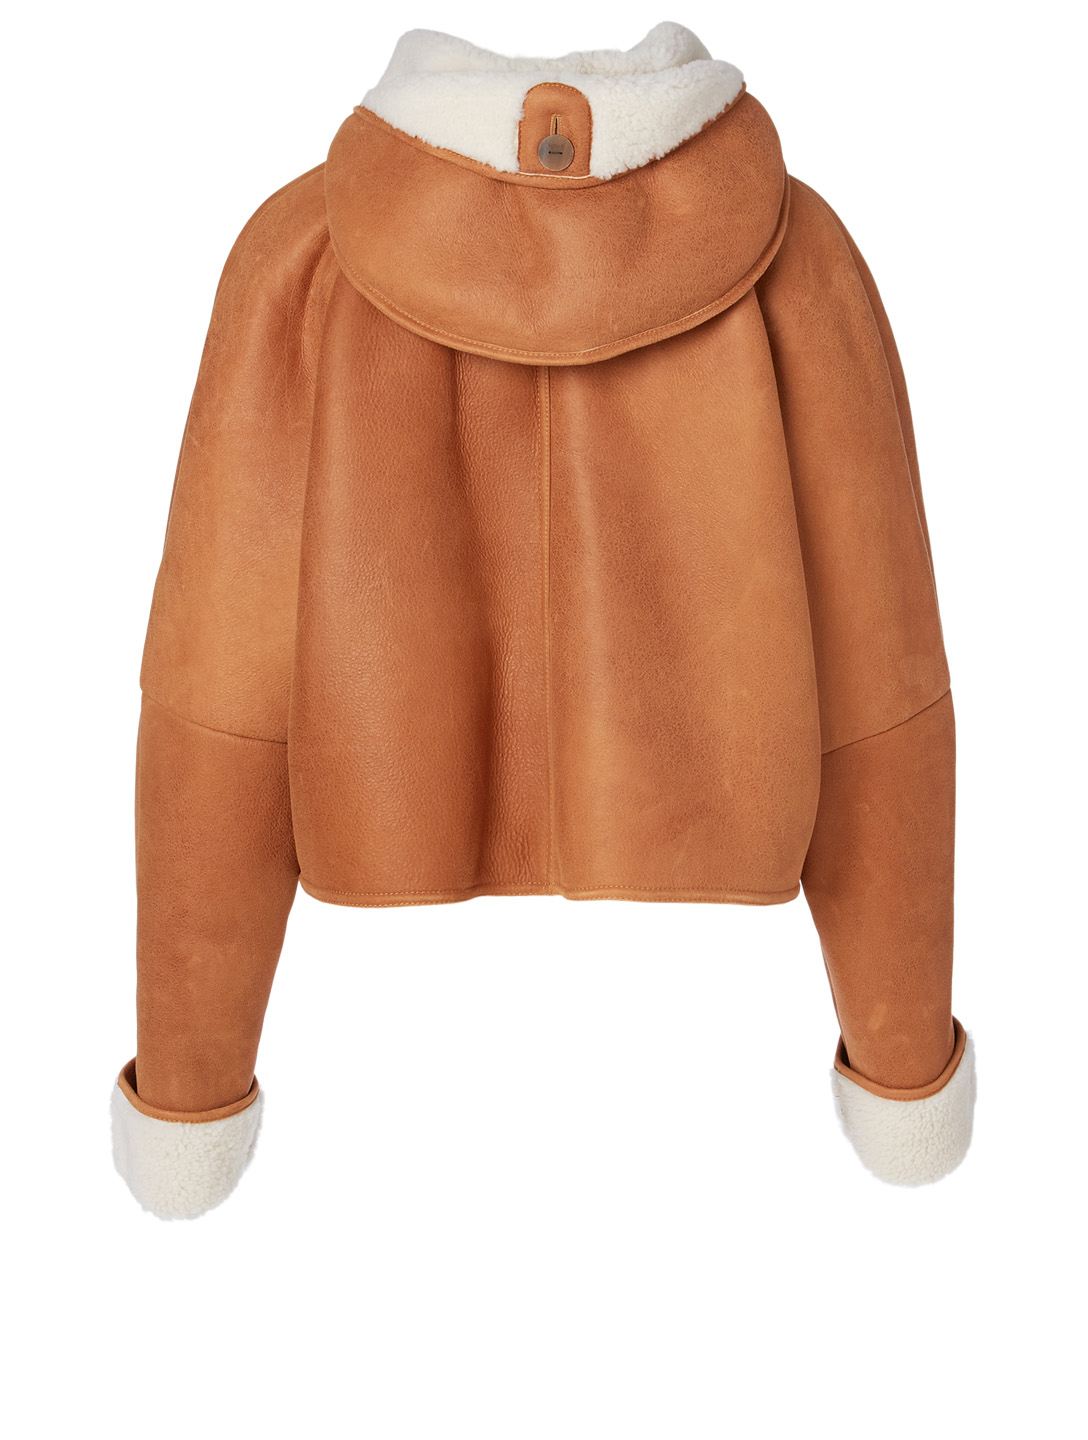 LOEWE Shearling Leather Jacket With Hood Women's Neutral